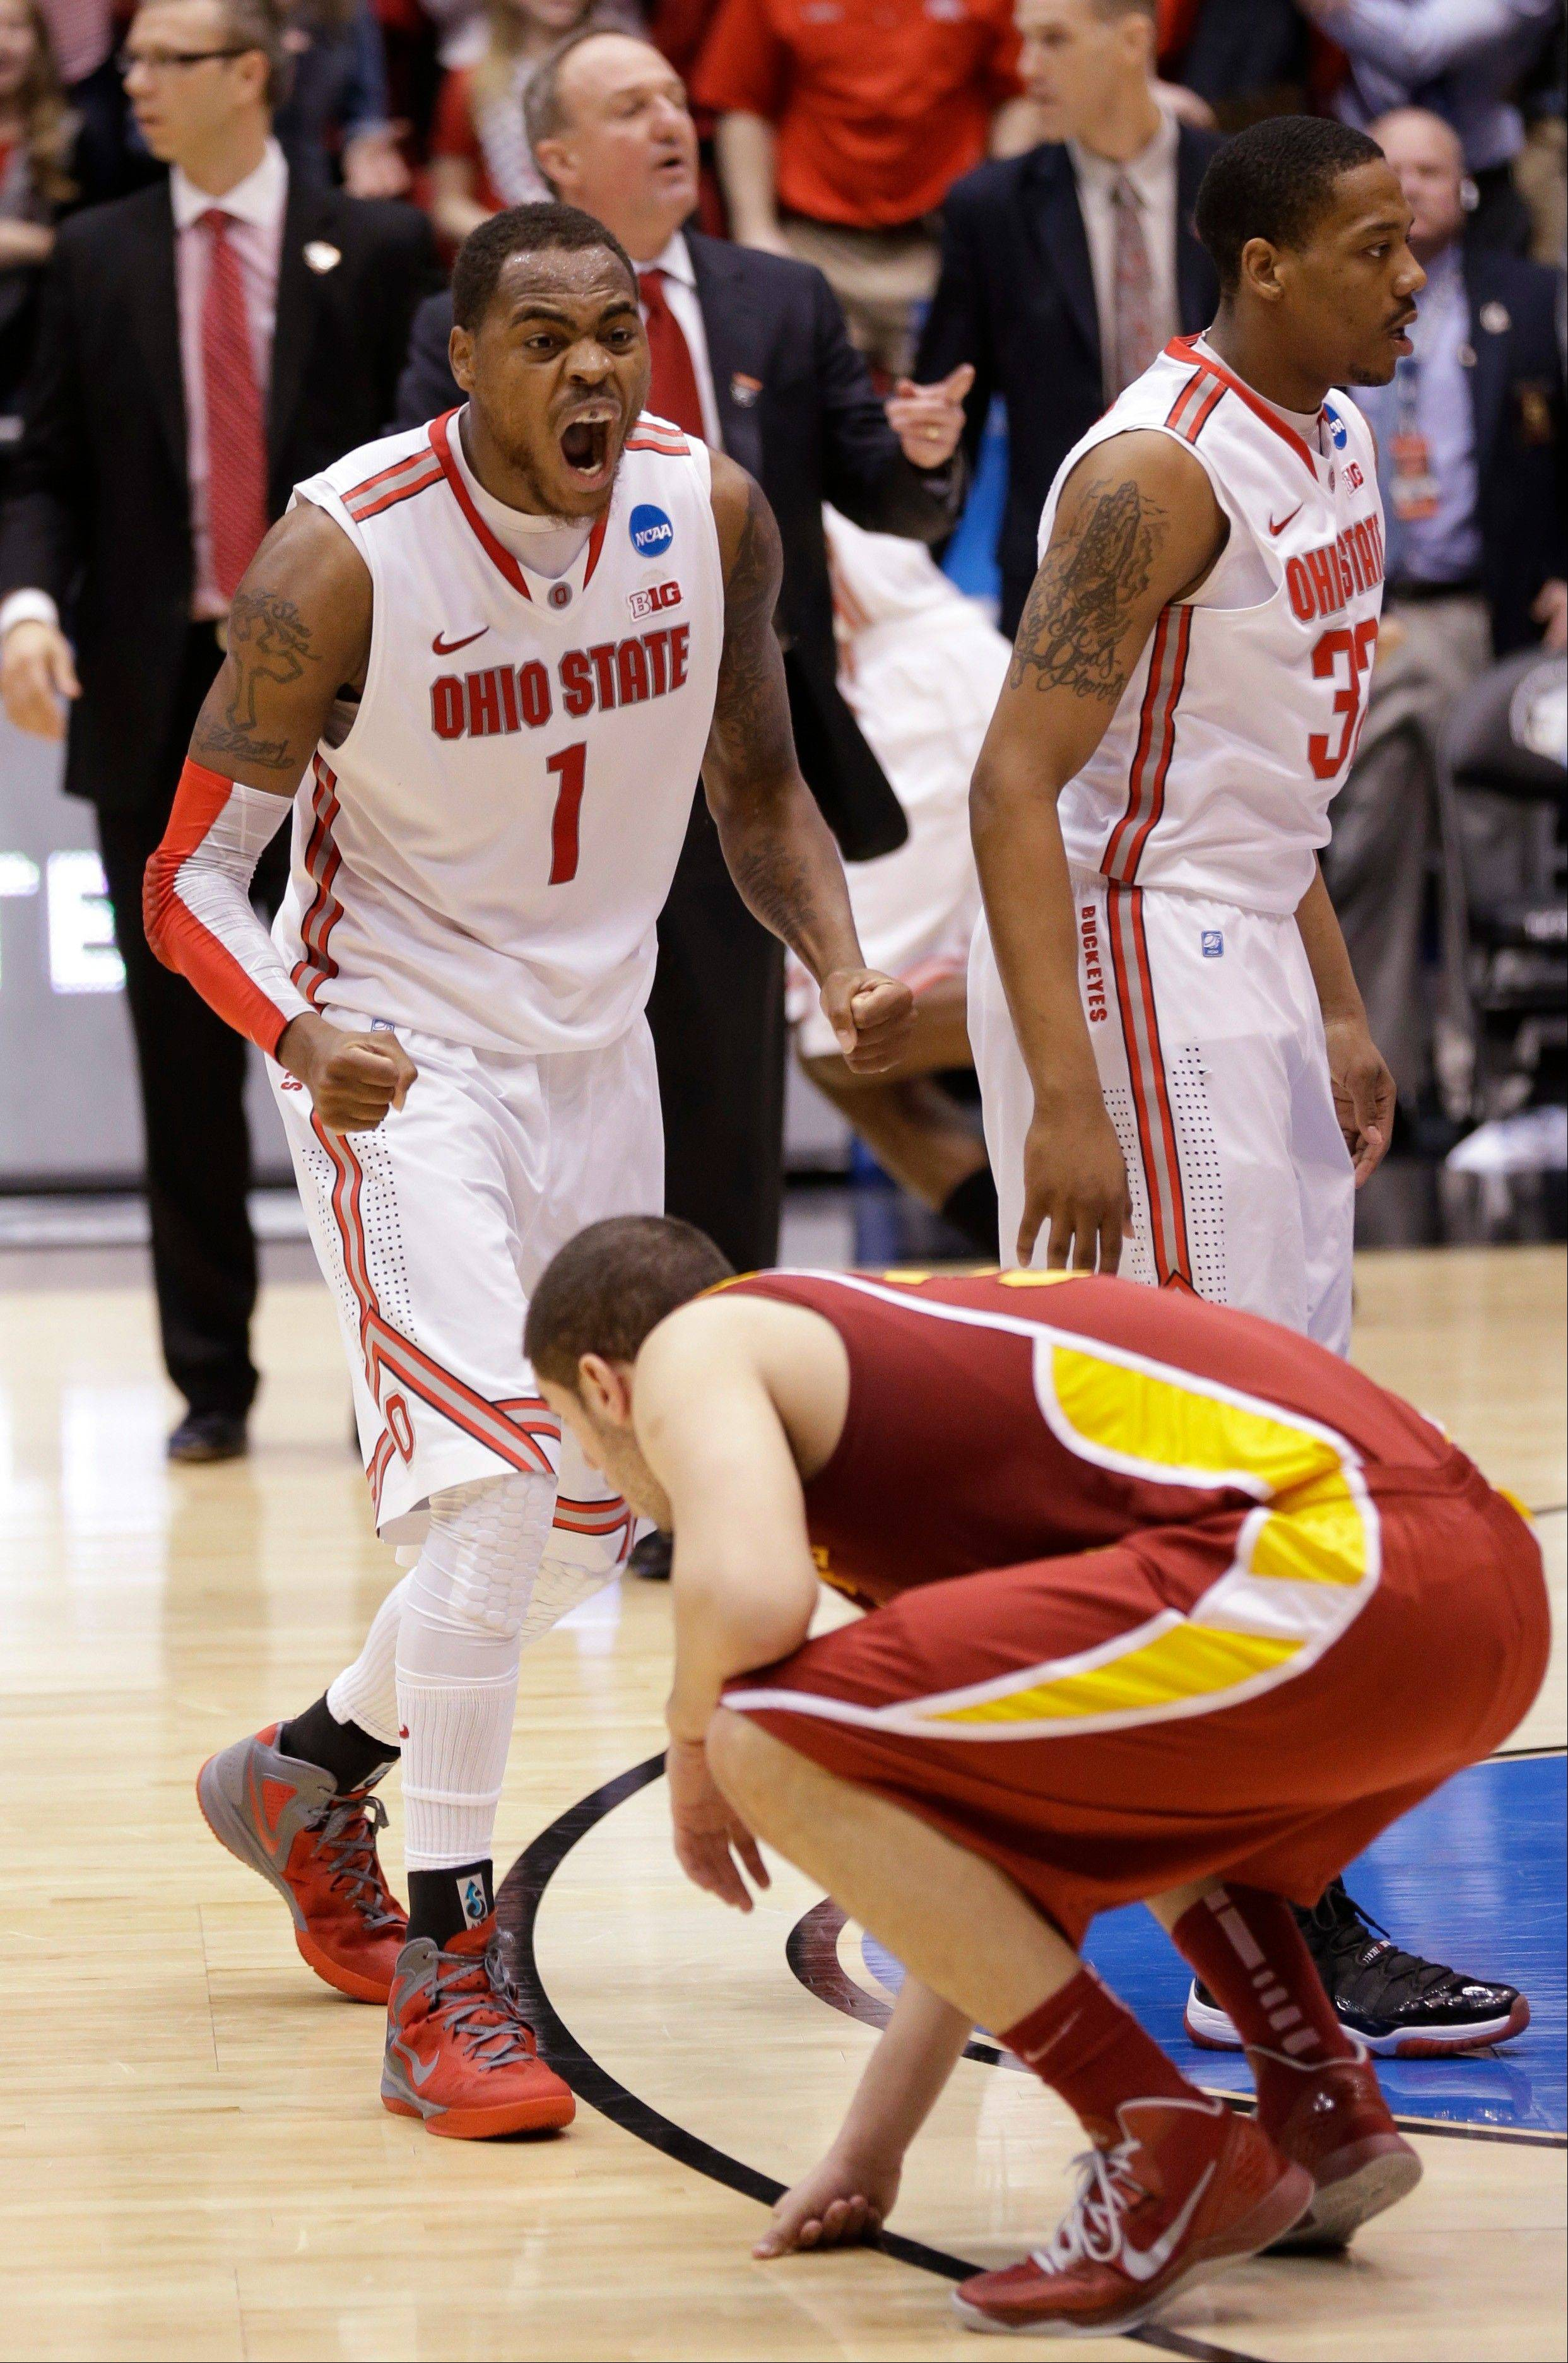 Iowa State forward Georges Niang squats on the floor as Ohio State forward Deshaun Thomas (1) and Lenzelle Smith, Jr. (32) celebrate Sunday in the final moments of Ohio State's 78-75 win in a third-round game of the NCAA tournament in Dayton, Ohio.